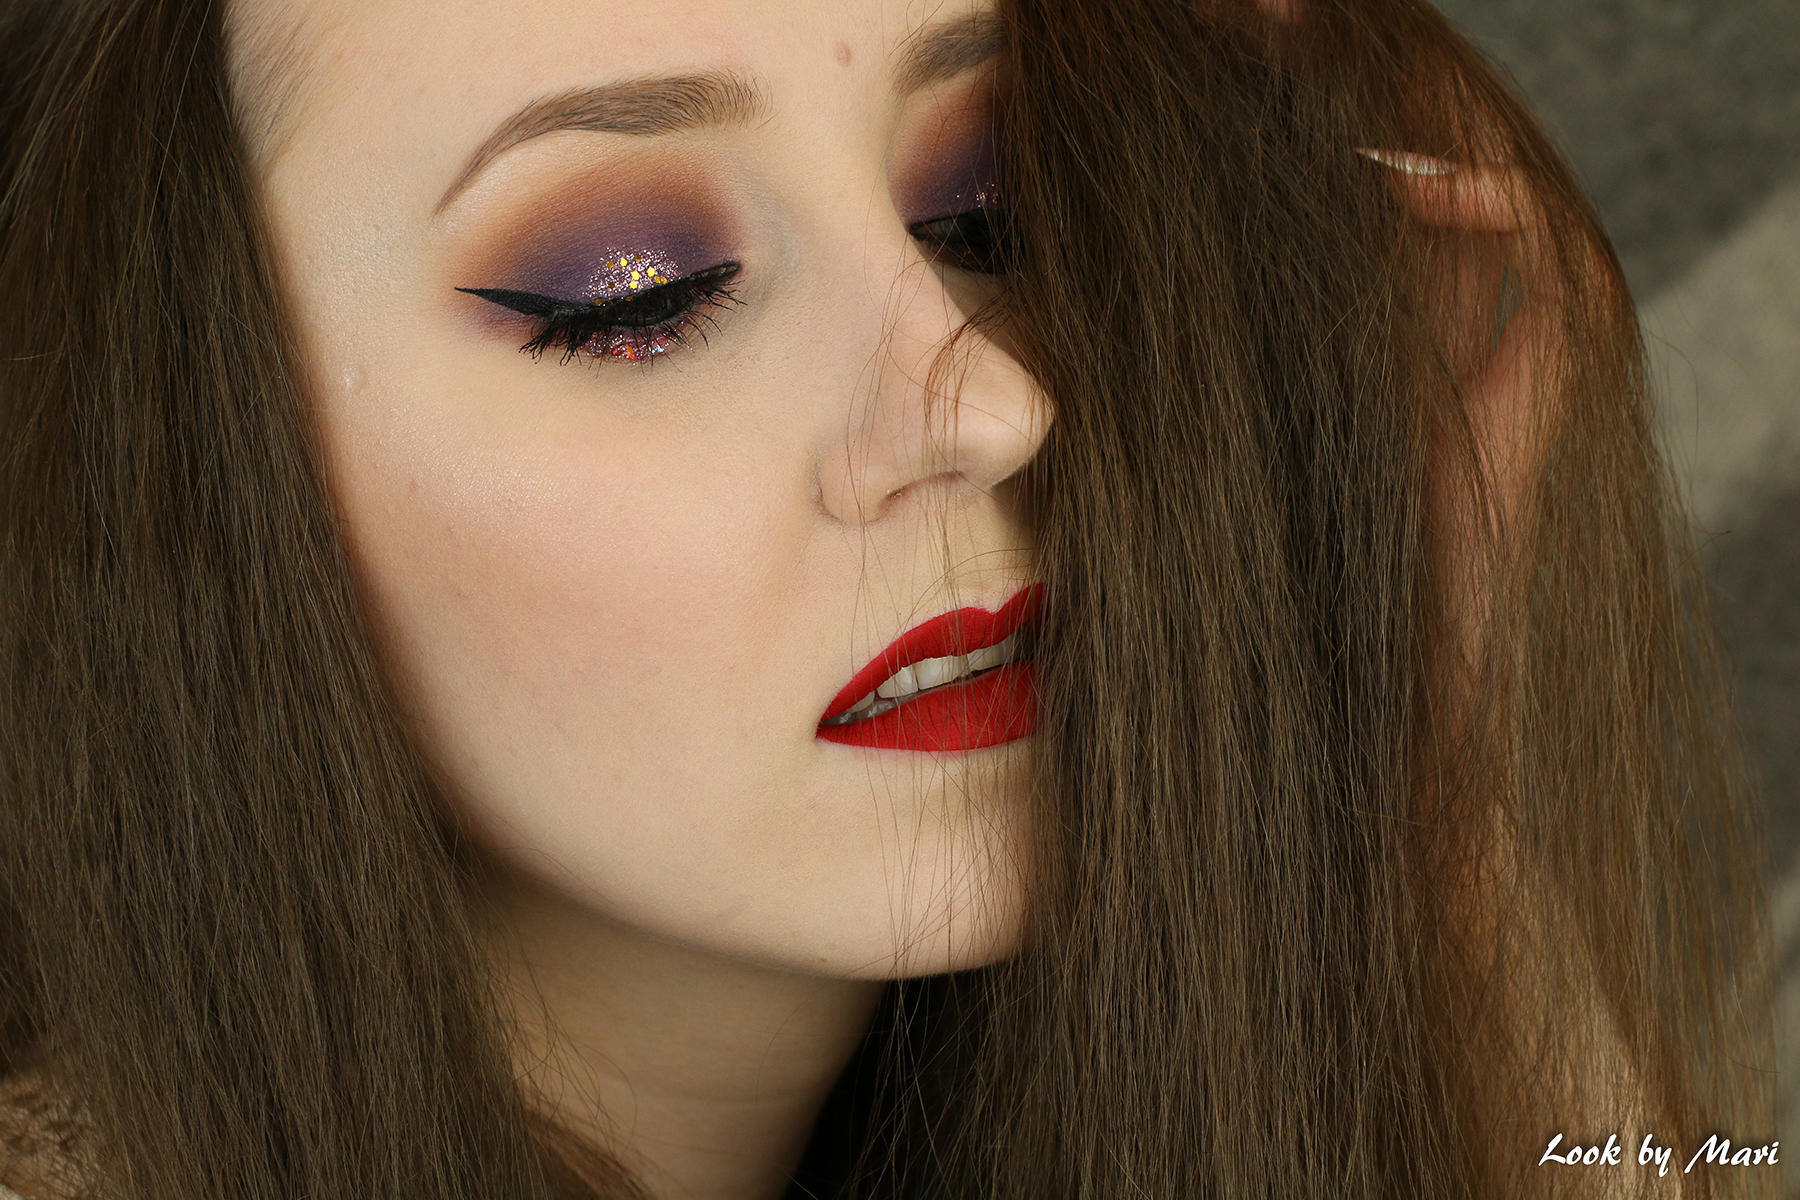 4 morphe brushes 35P eyeshadow palette review inspo inspiration makeup look tutorial